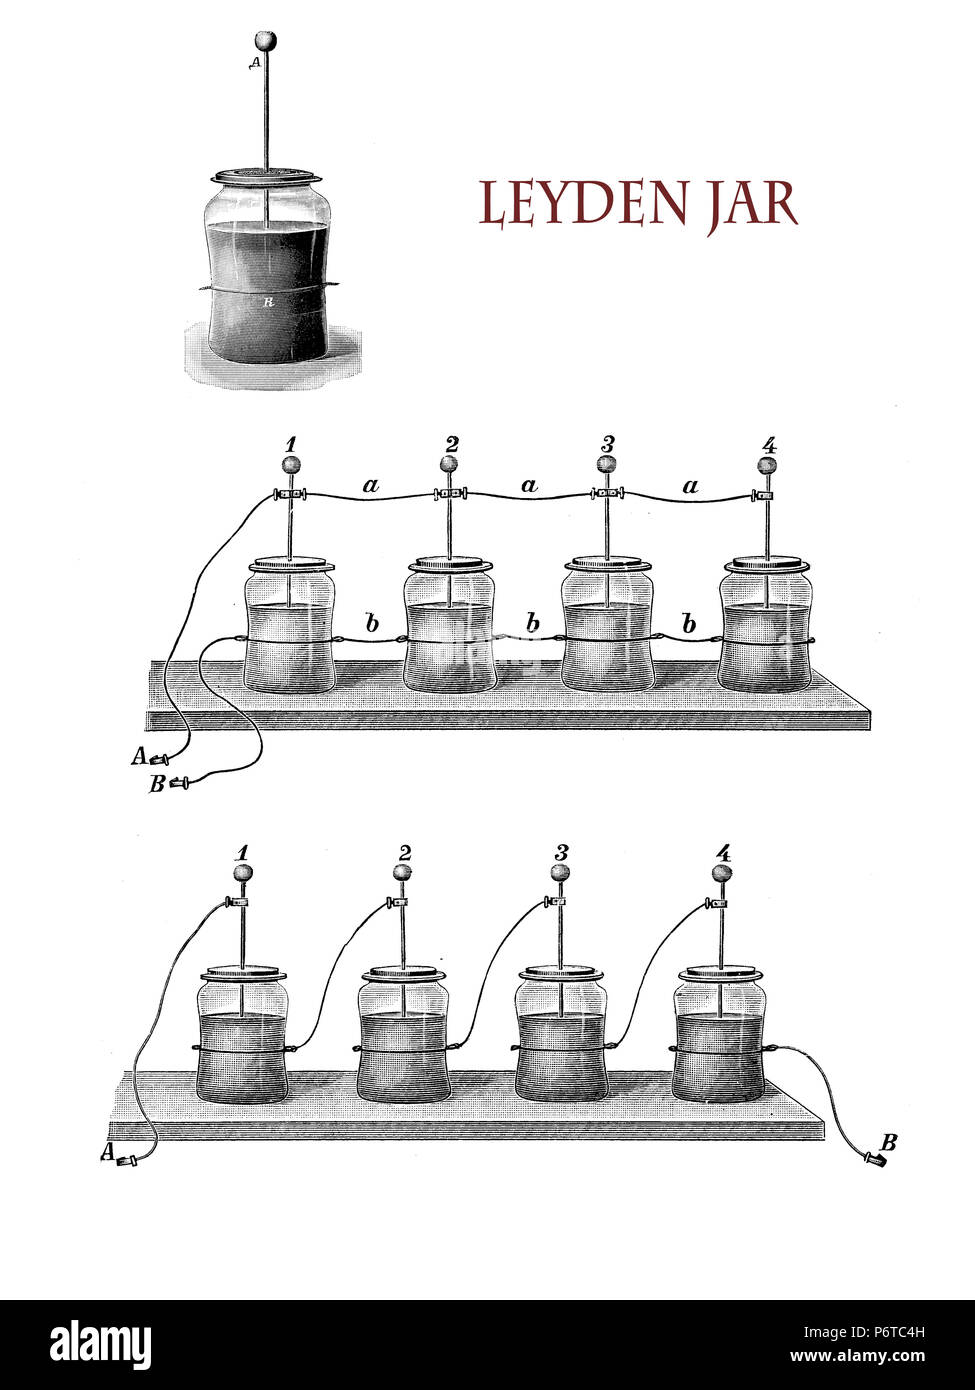 electricity and lab applications: Leyden jar, bottle filled with water with a metal foil inside and outside  and a metal spike through the jar lid to make contact with the inner foil, a first kind of capacitor able to store high voltage elctric charge, vintage illustration - Stock Image